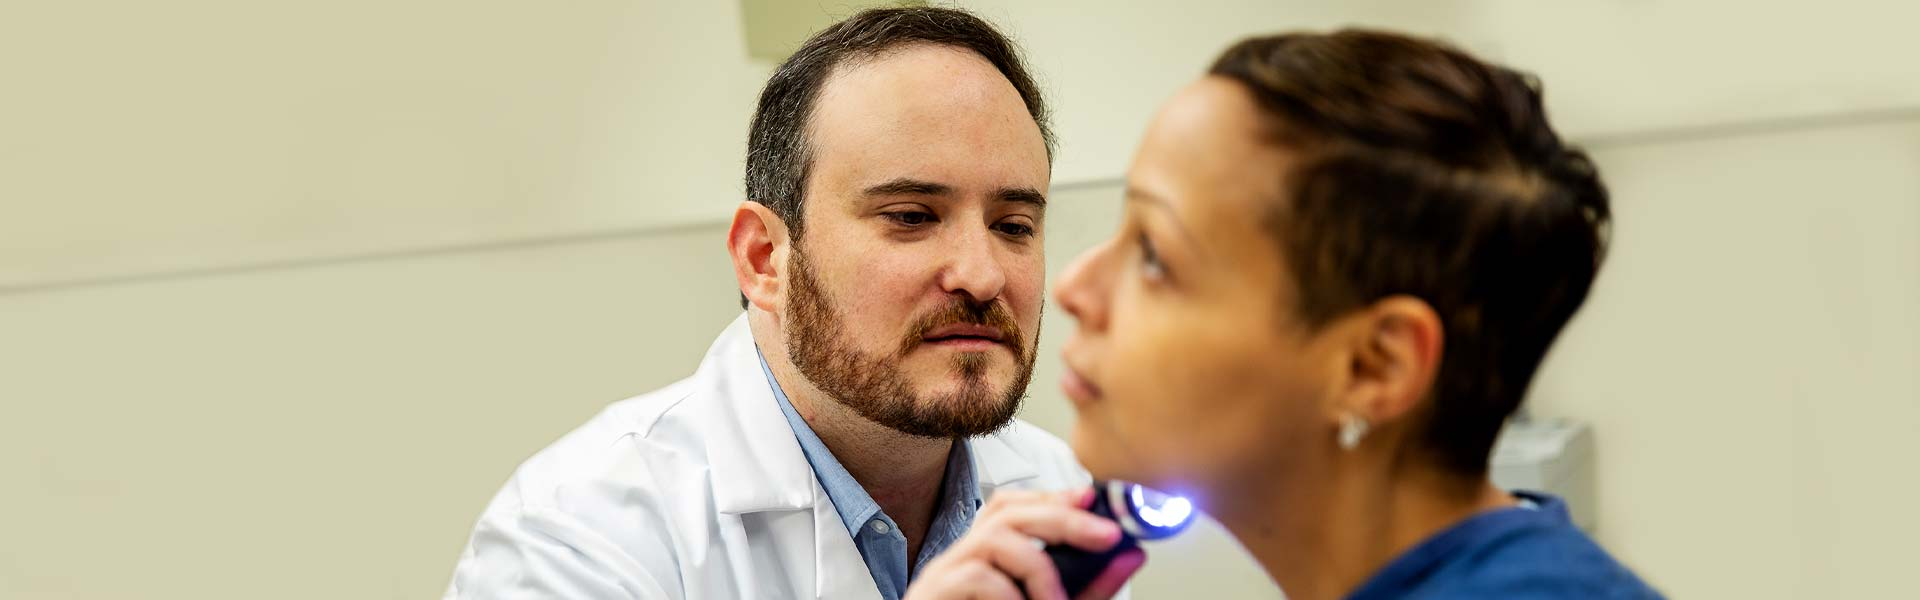 Image of doctor examining patient